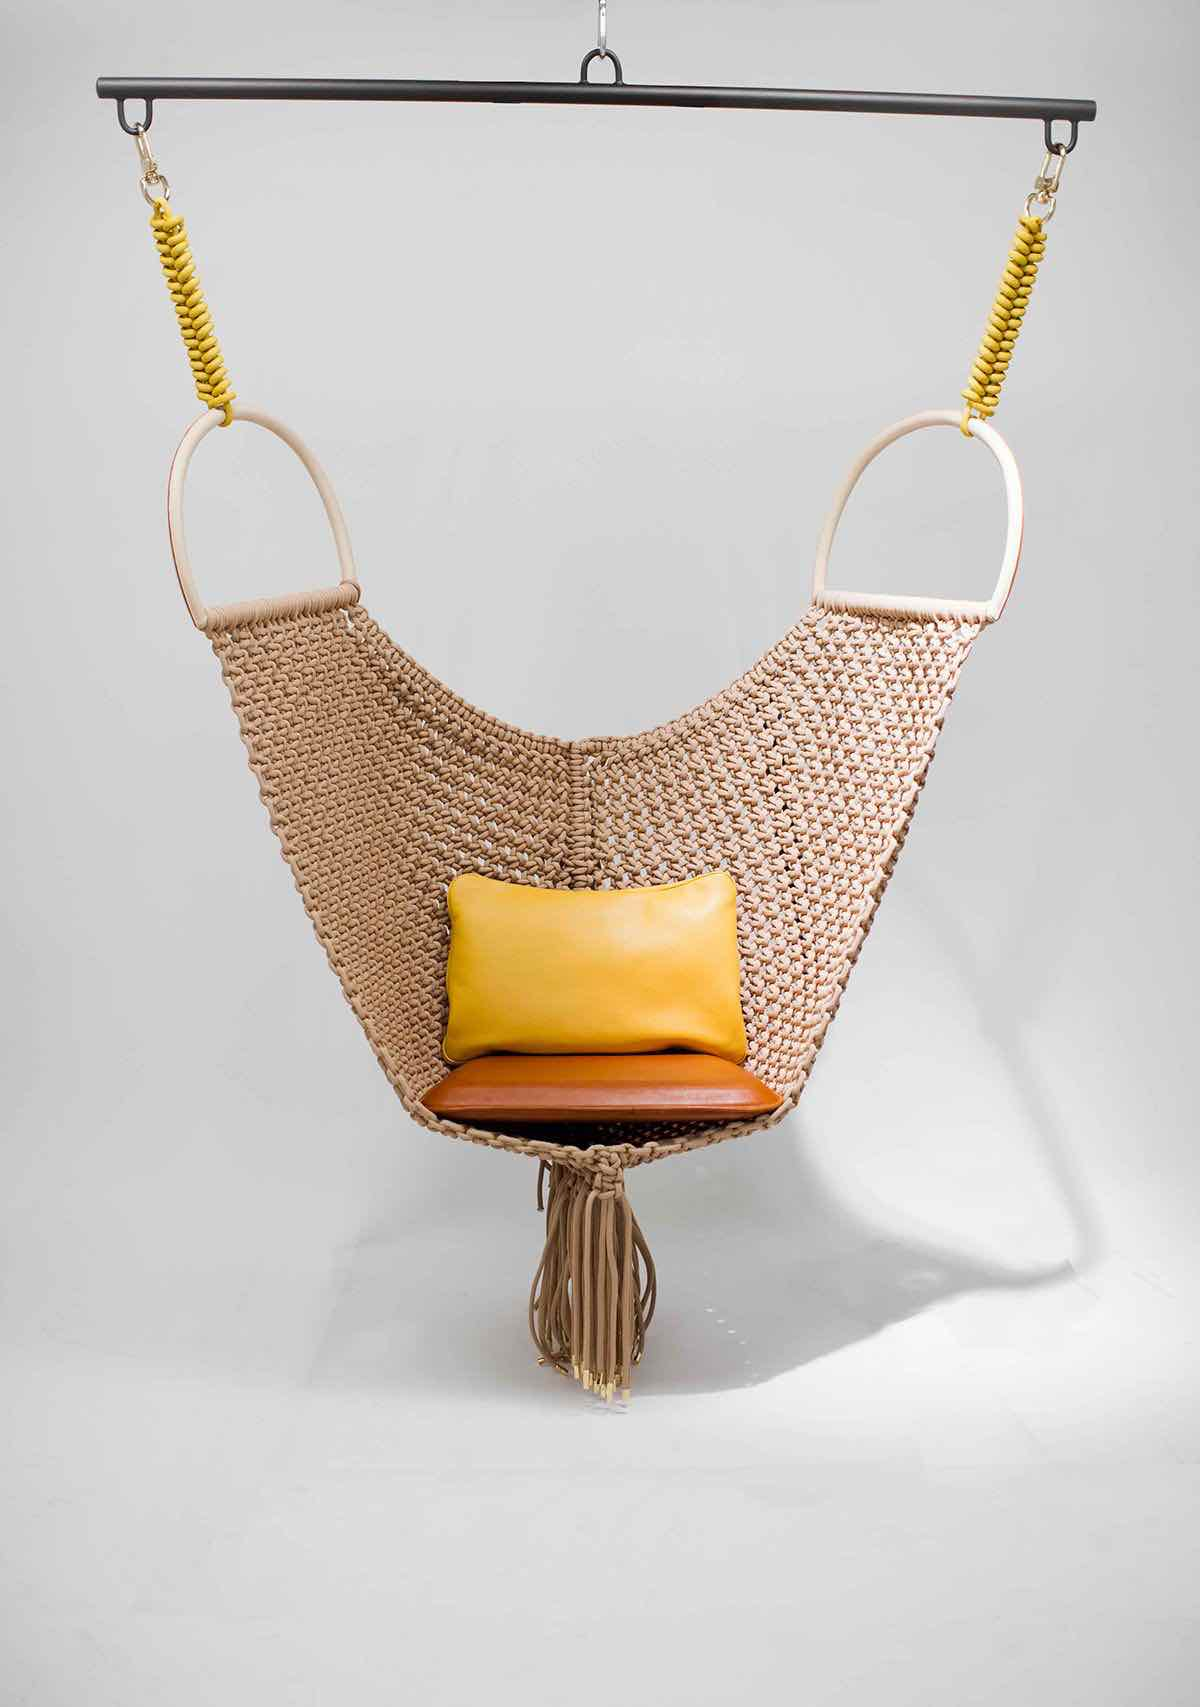 SWING Chair by Patricia Urquiola for Louis Vuitton